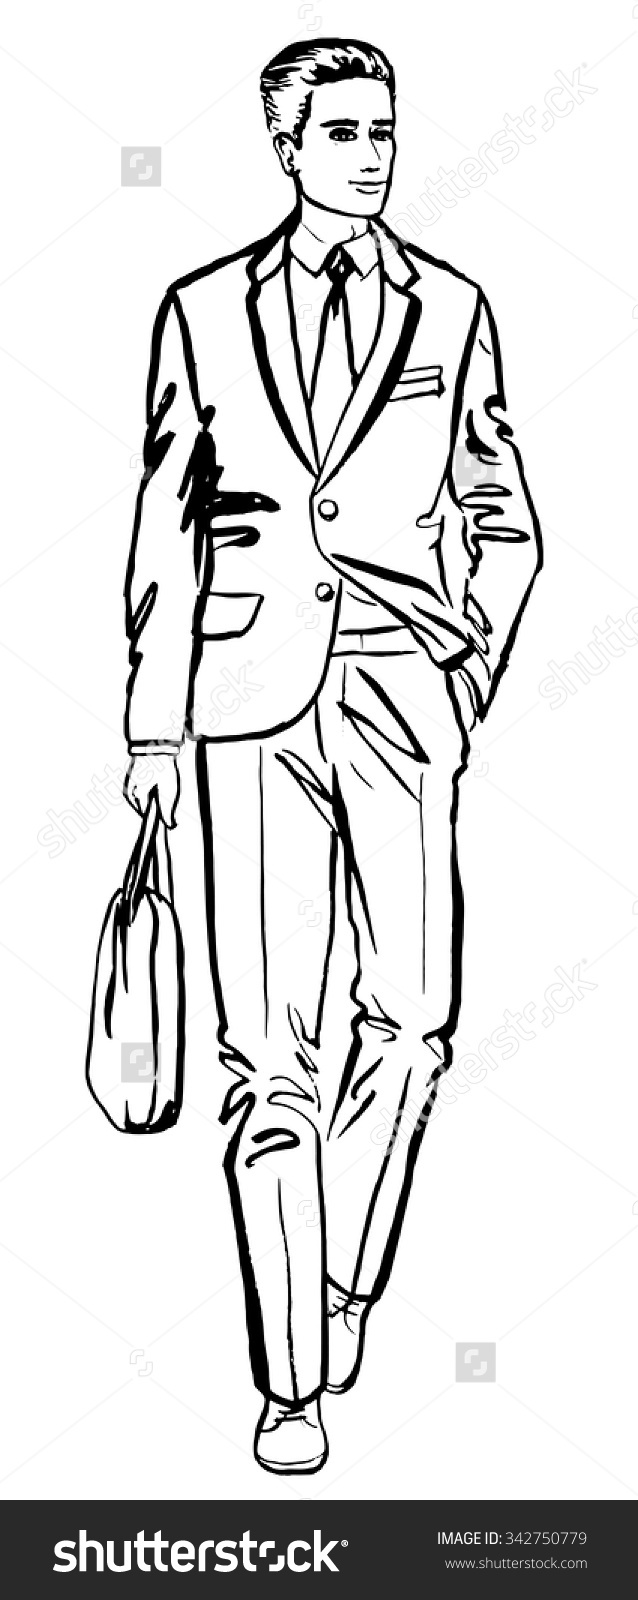 Fashion Illustration Business Man Hand Drawn Stock Vector.